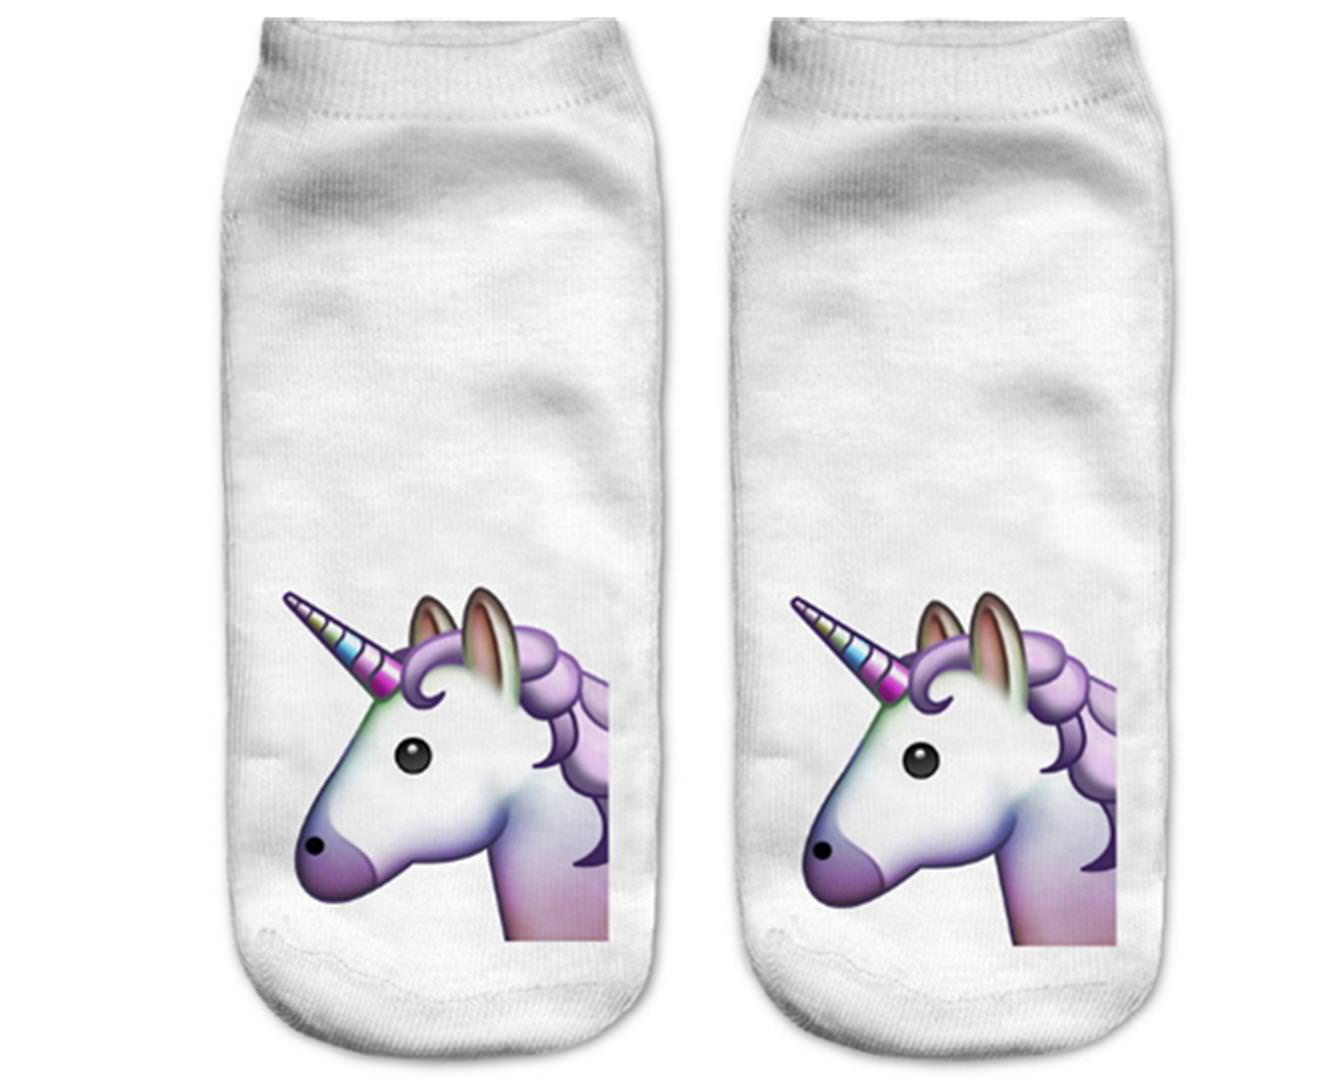 3PAIRS of 3D Cotton Funny Pattern Printed Short Socks for Unisex Adults Women